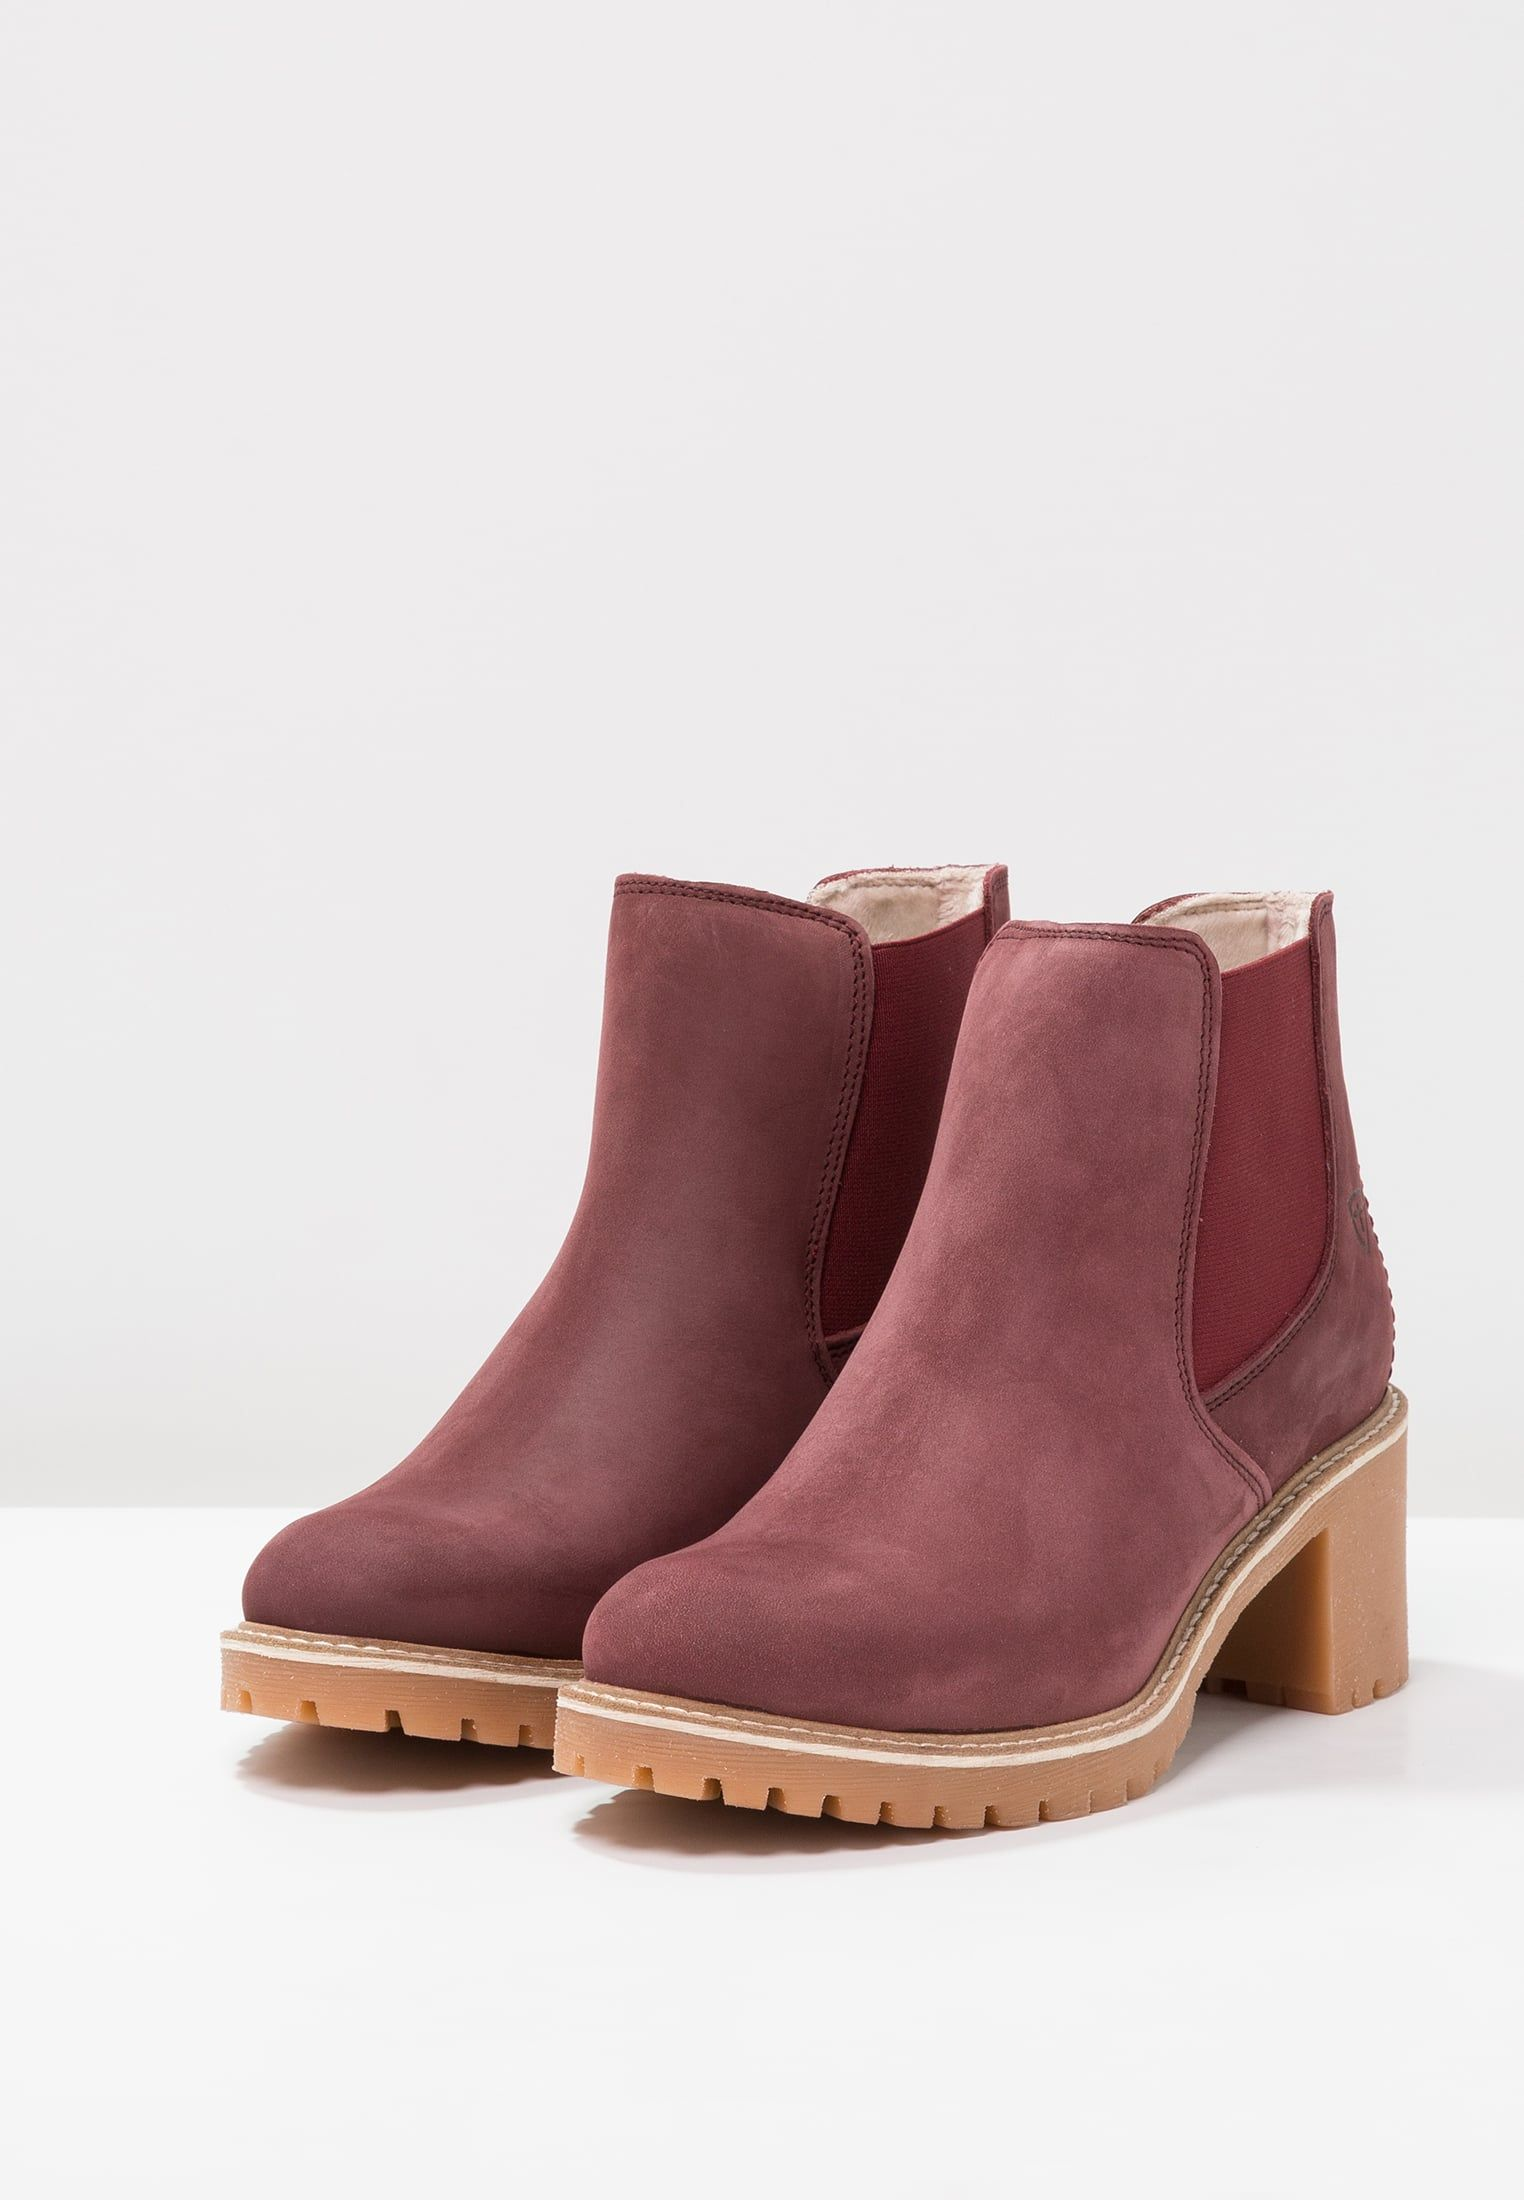 Tamaris Ankle Boot bordeaux | Tamaris ankle